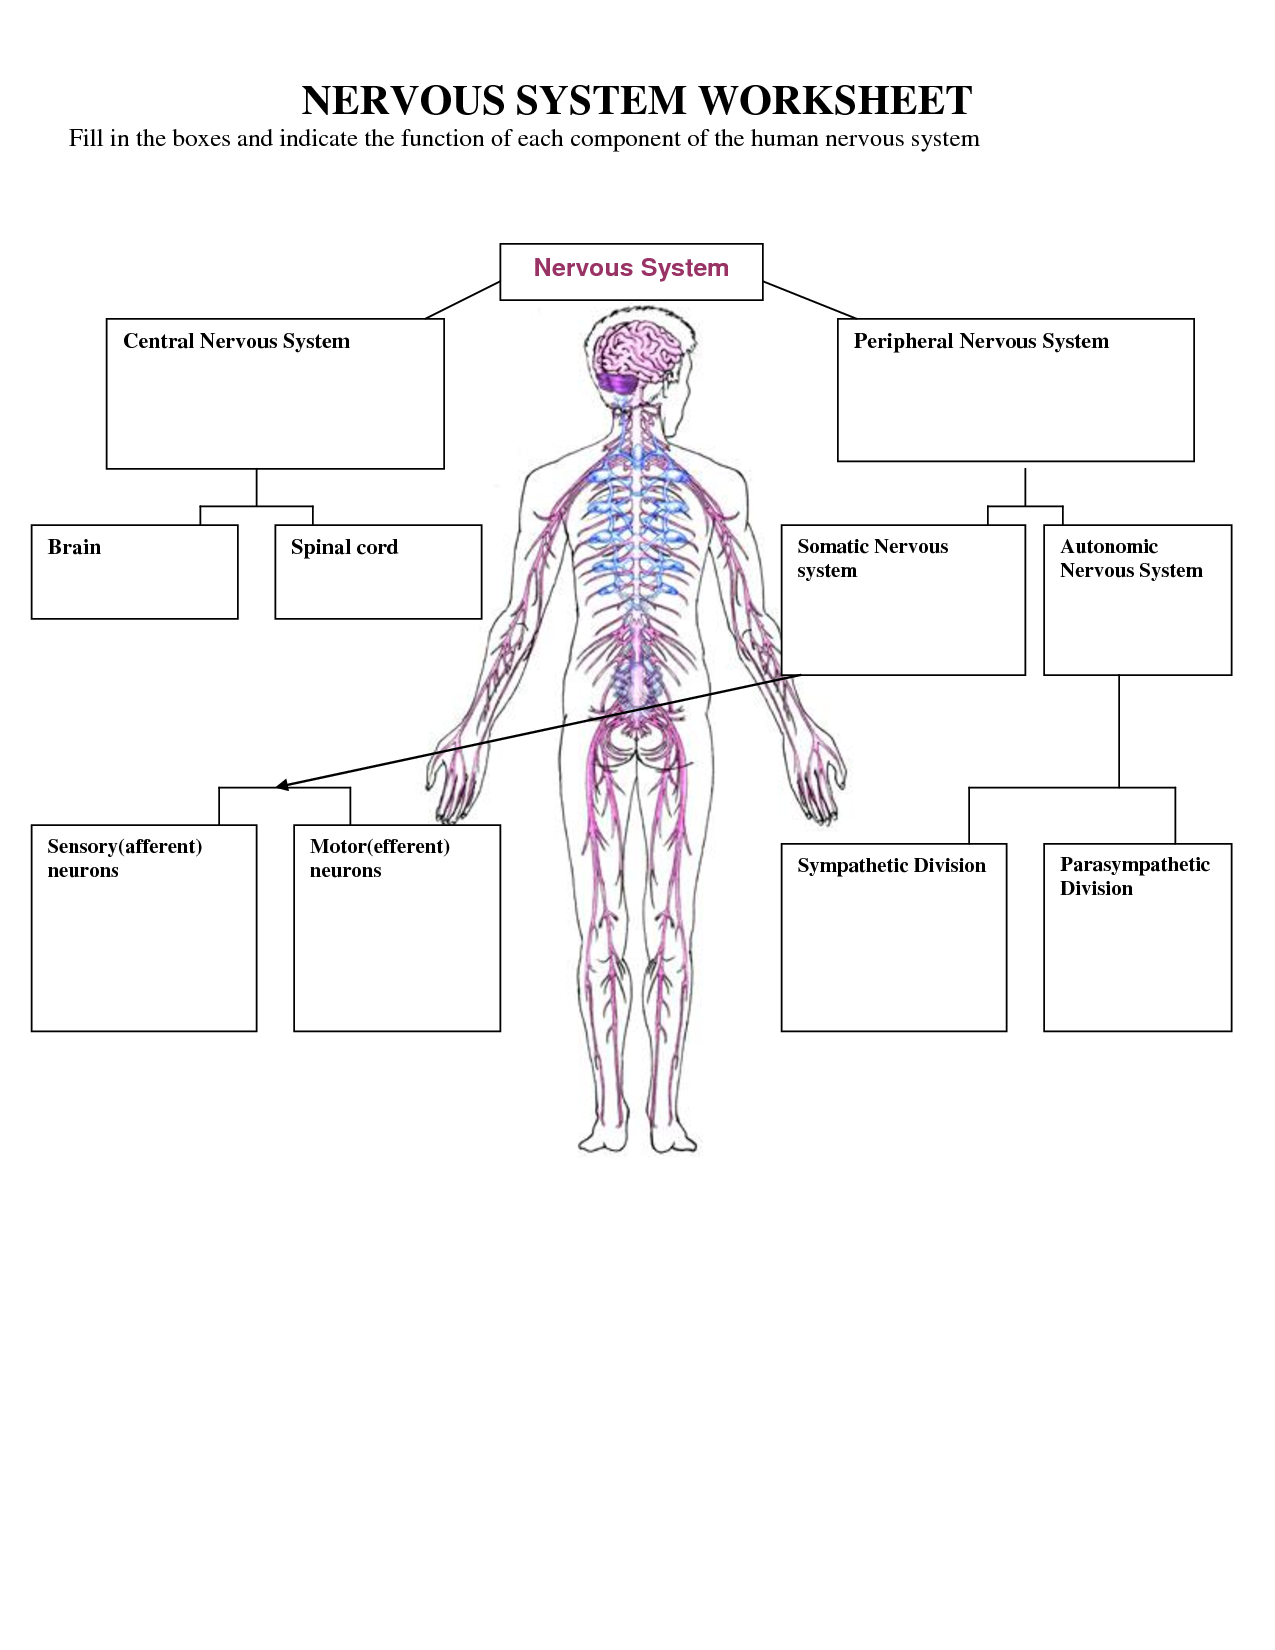 blank nervous system diagram wiring diagram expert blank nervous system diagram [ 1275 x 1650 Pixel ]